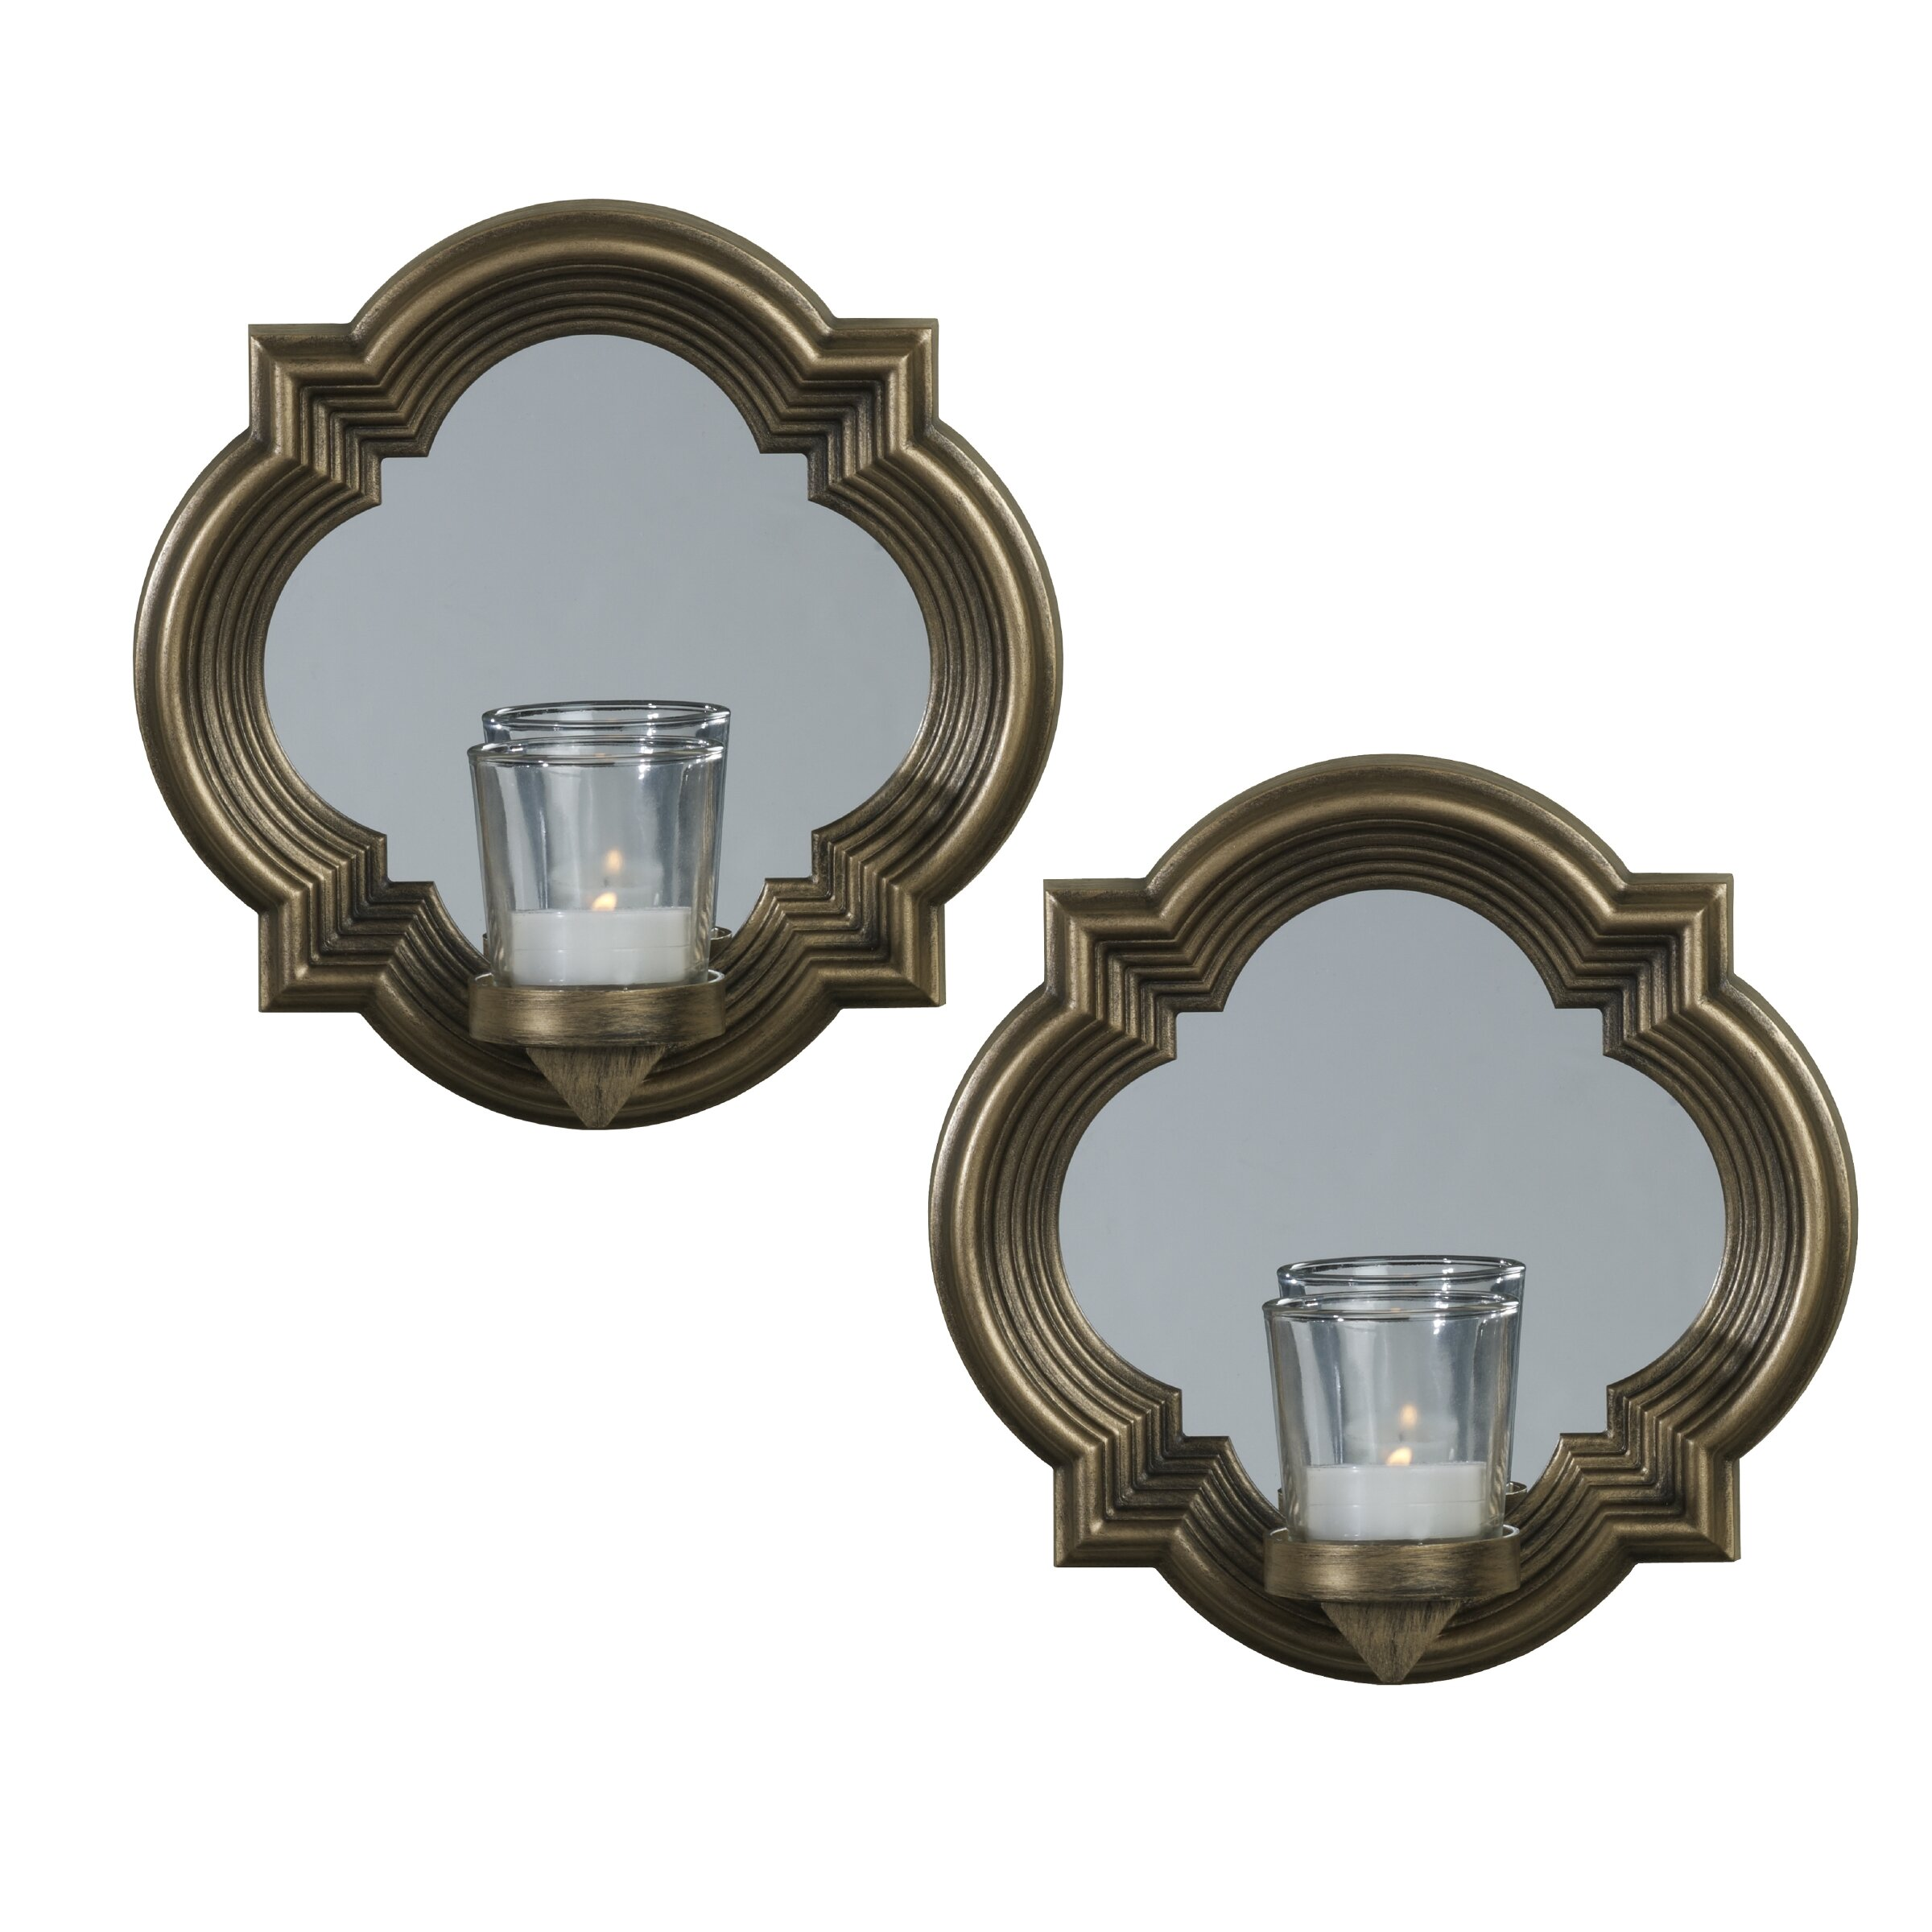 Quatrefoil Wall Sconces : Quatrefoil Wall Sconce - Quatrefoil 3d Wall Sconce Bowring, Quatrefoil Bracket Wall Sconce ...